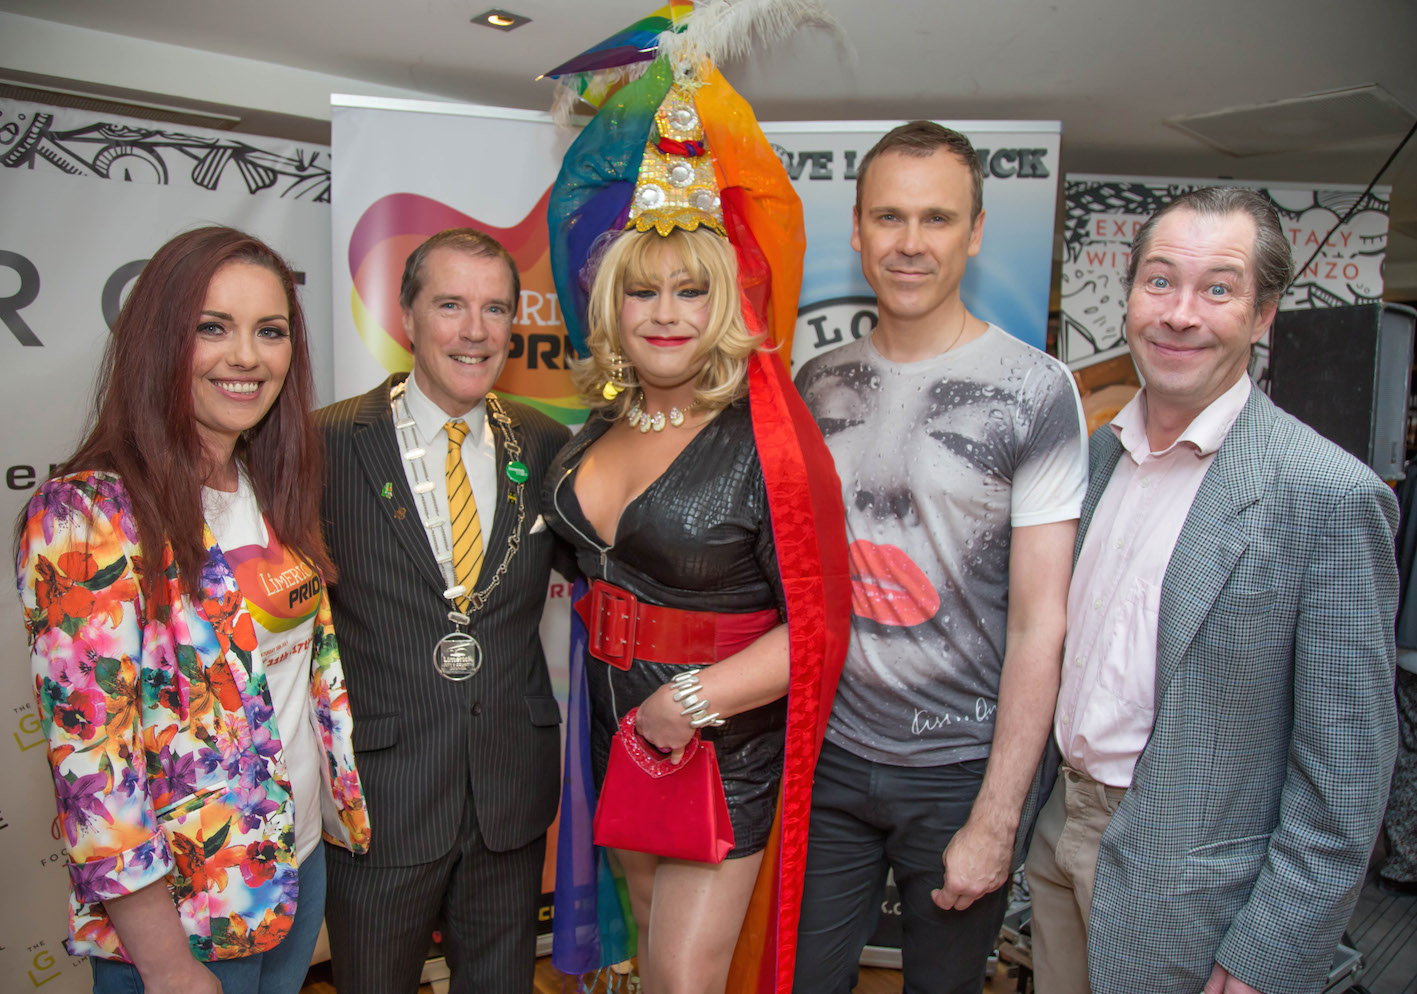 Limerick LGBTI Pride Festival 2016 press